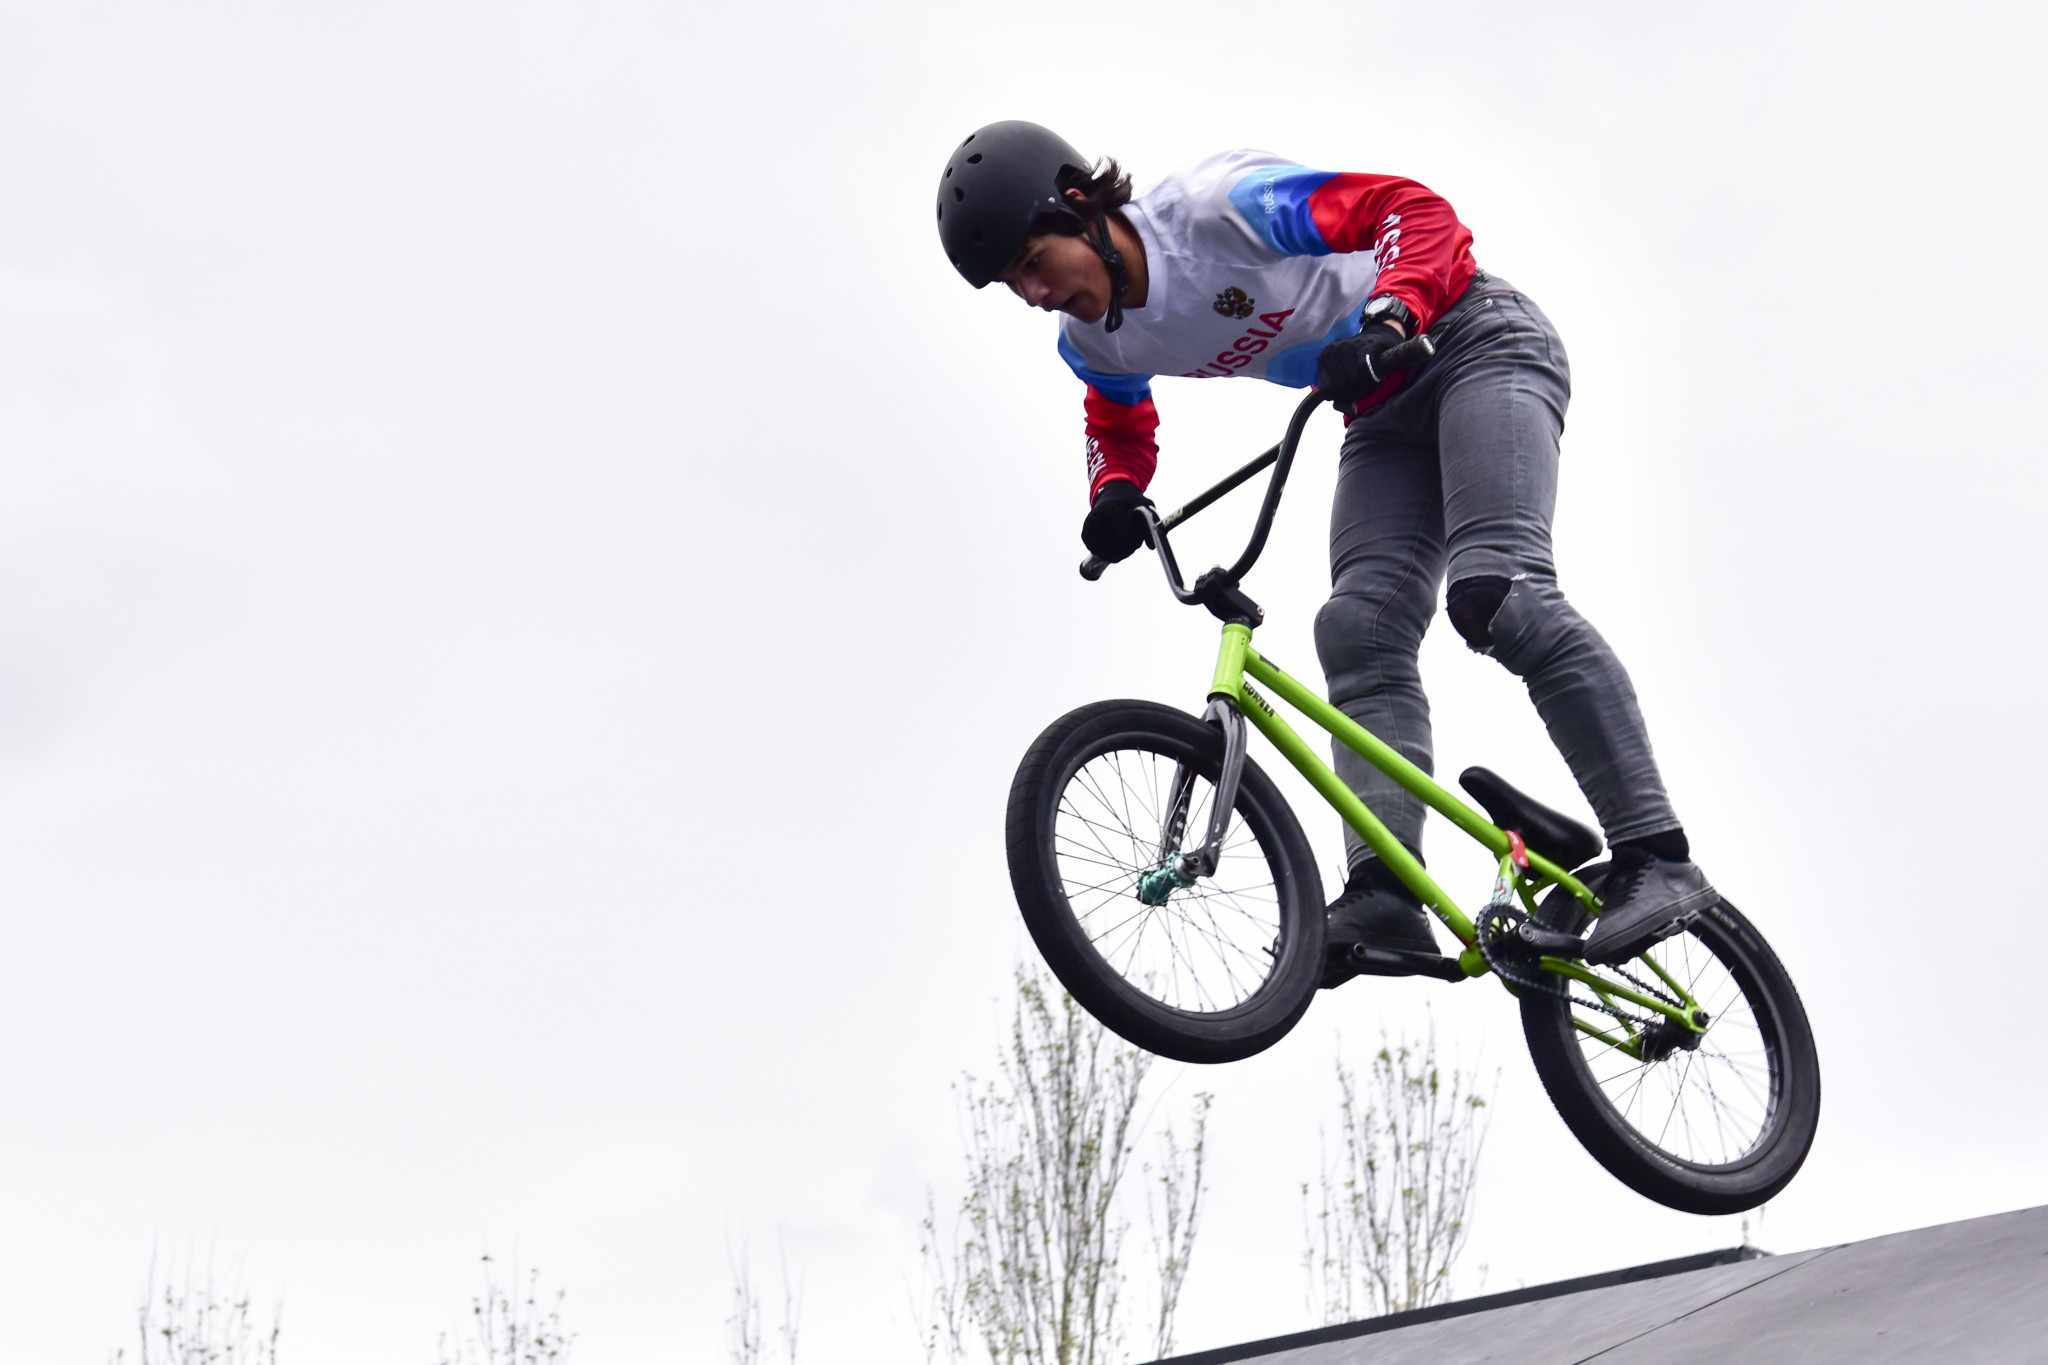 BMX freestyle axed from first ANOC World Beach Games in San Diego